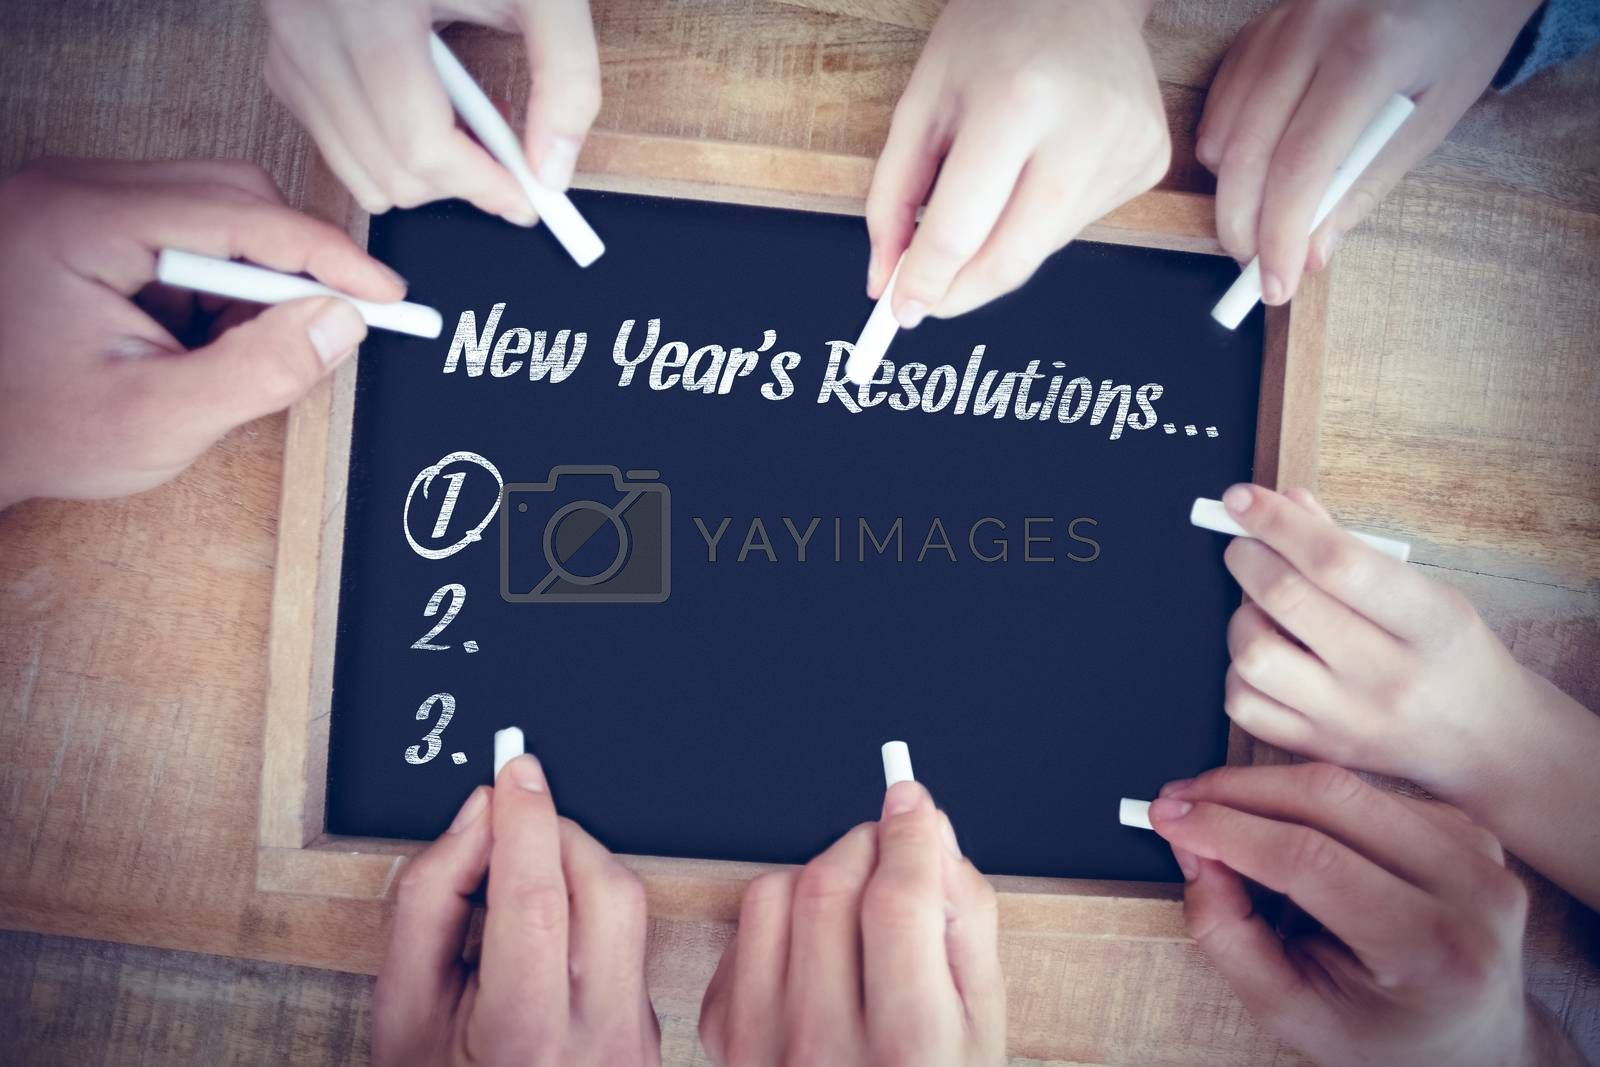 New years resolution list against hands writing on chalkboard